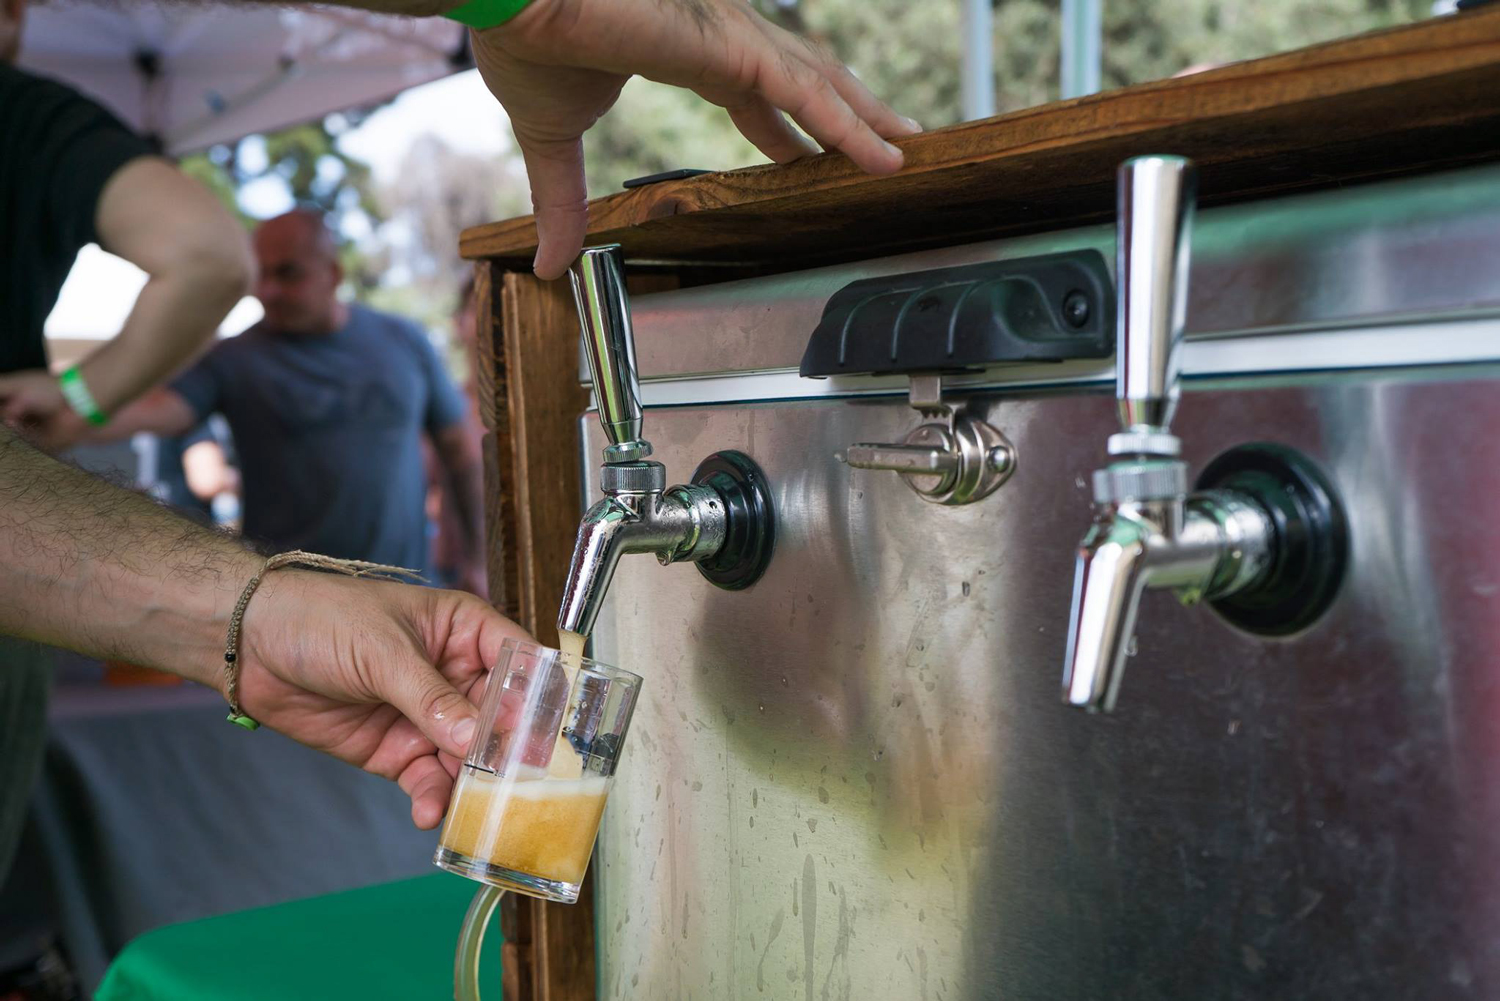 Burgers-and-Beer-Best-Of-Photos-for-Web-(10-of-25).jpg